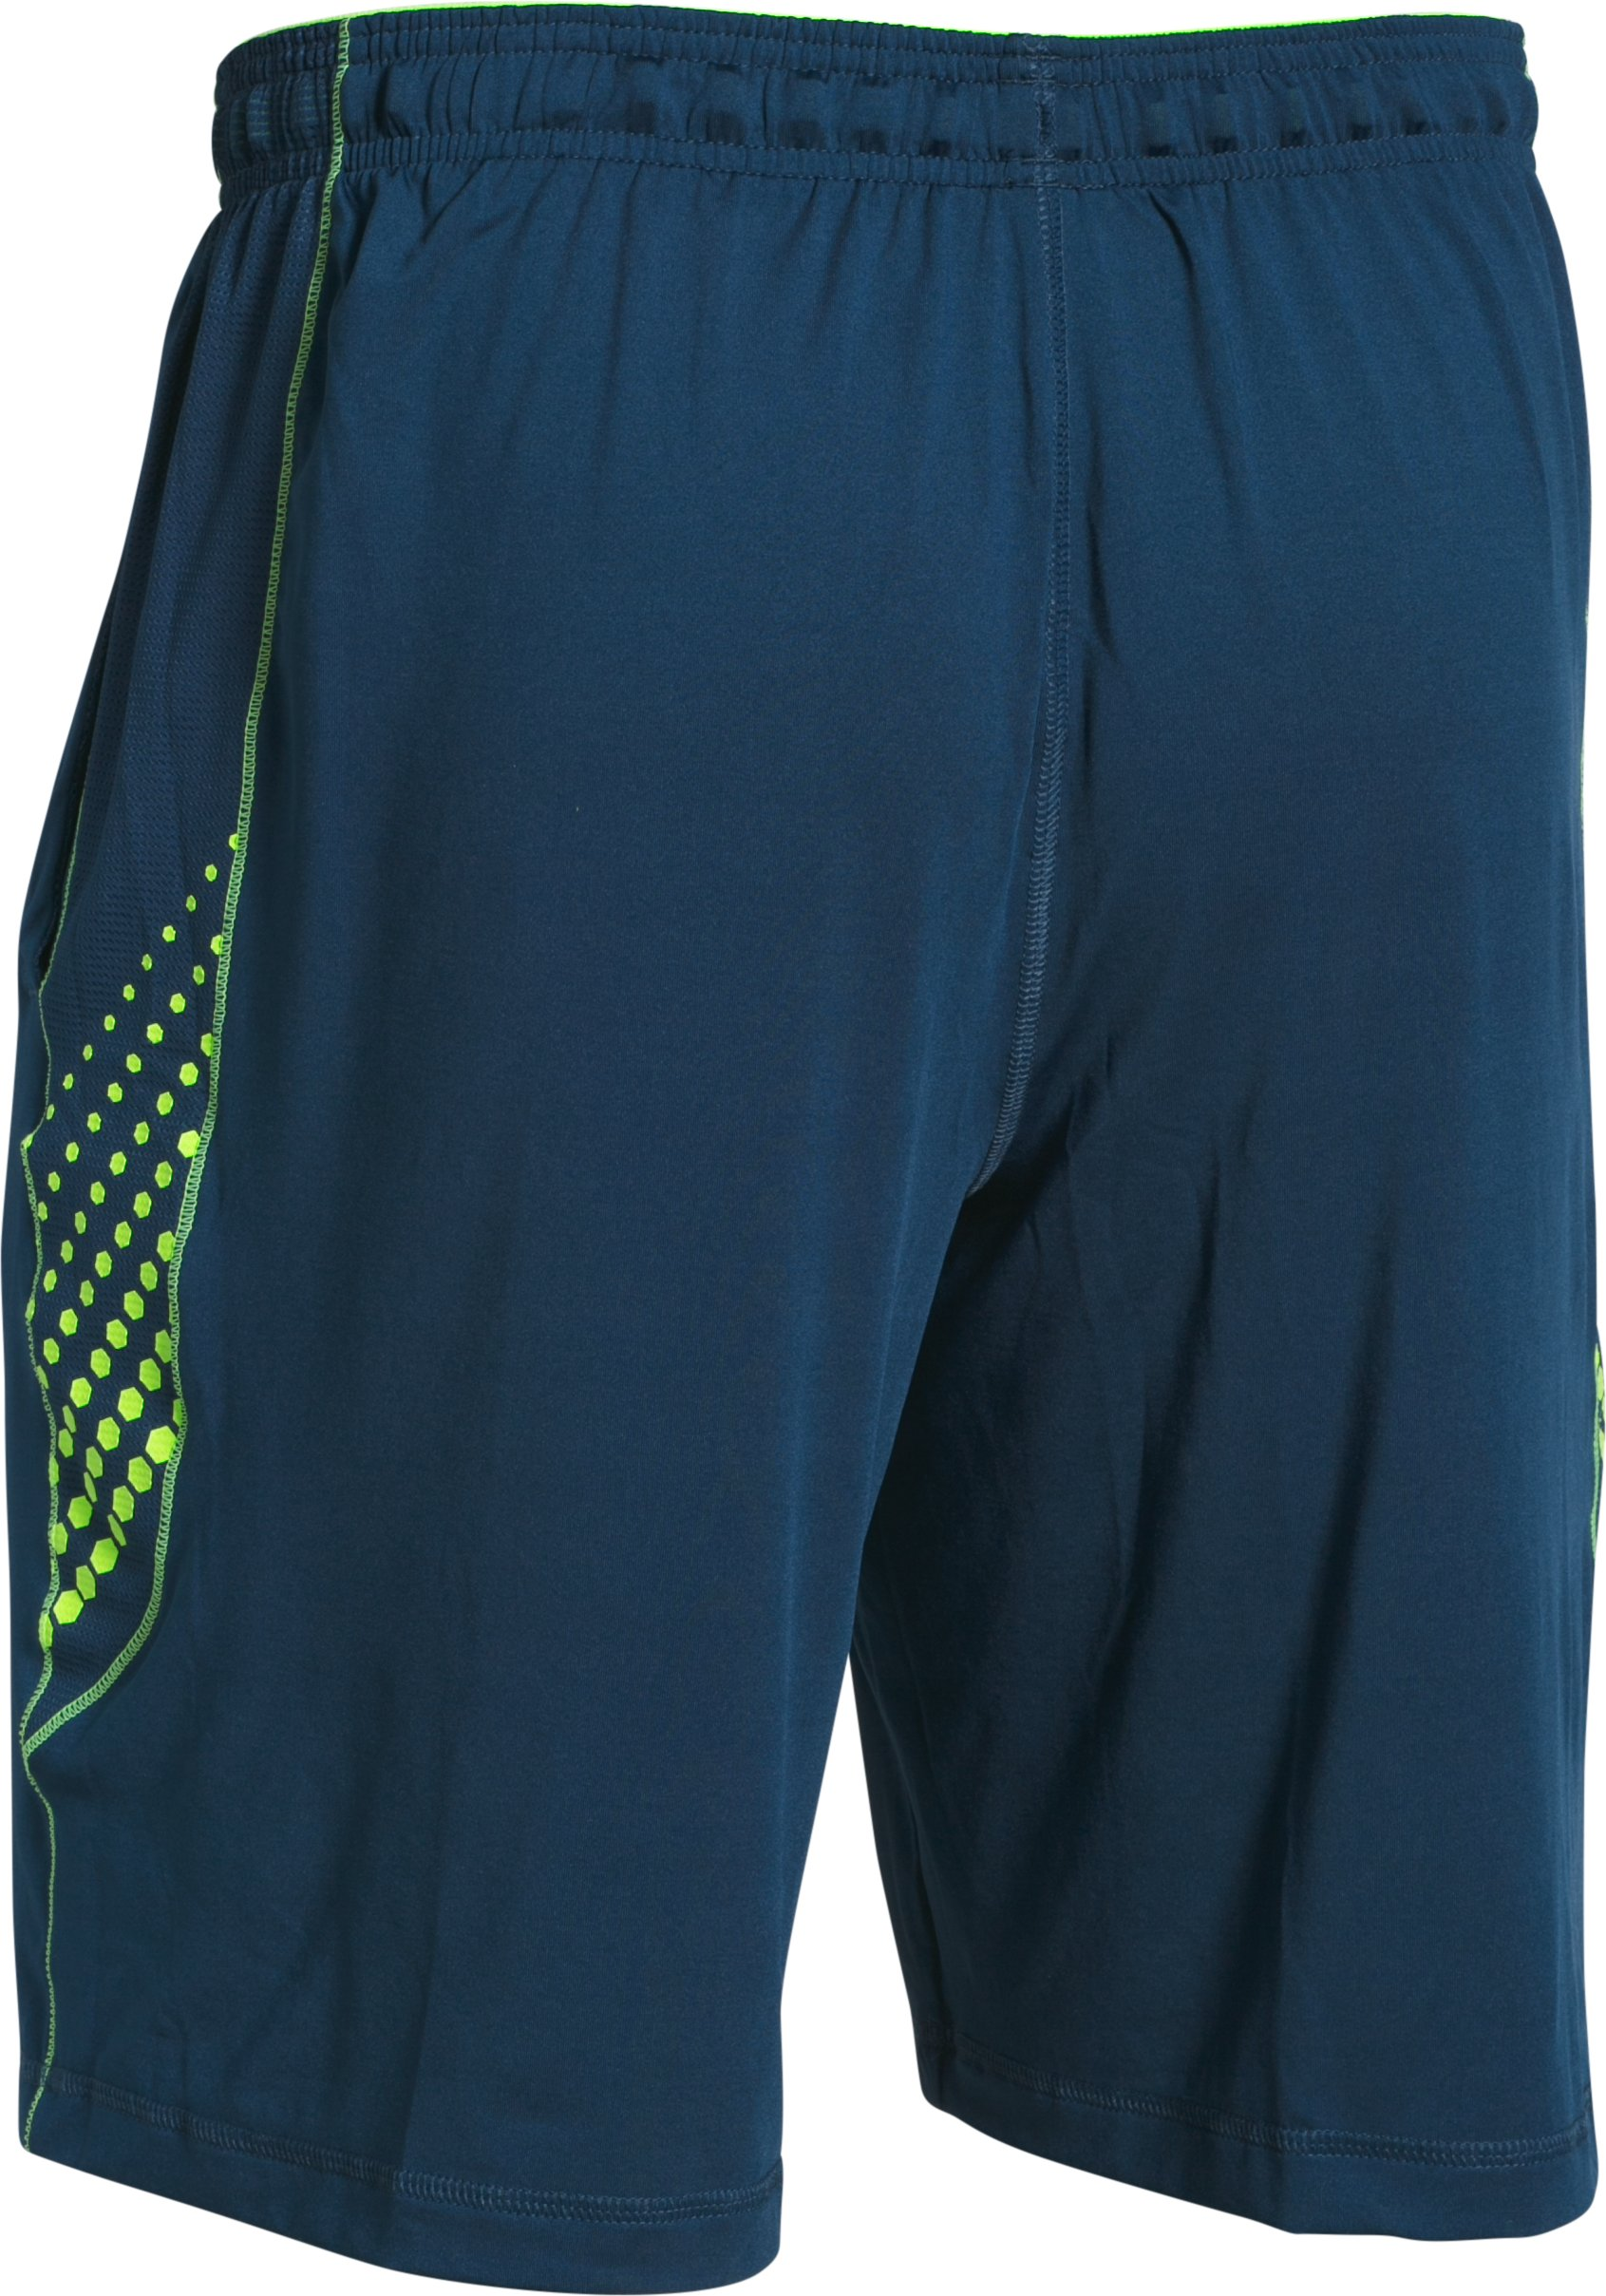 Men's UA Raid Graphic Shorts, BLACKOUT NAVY, undefined